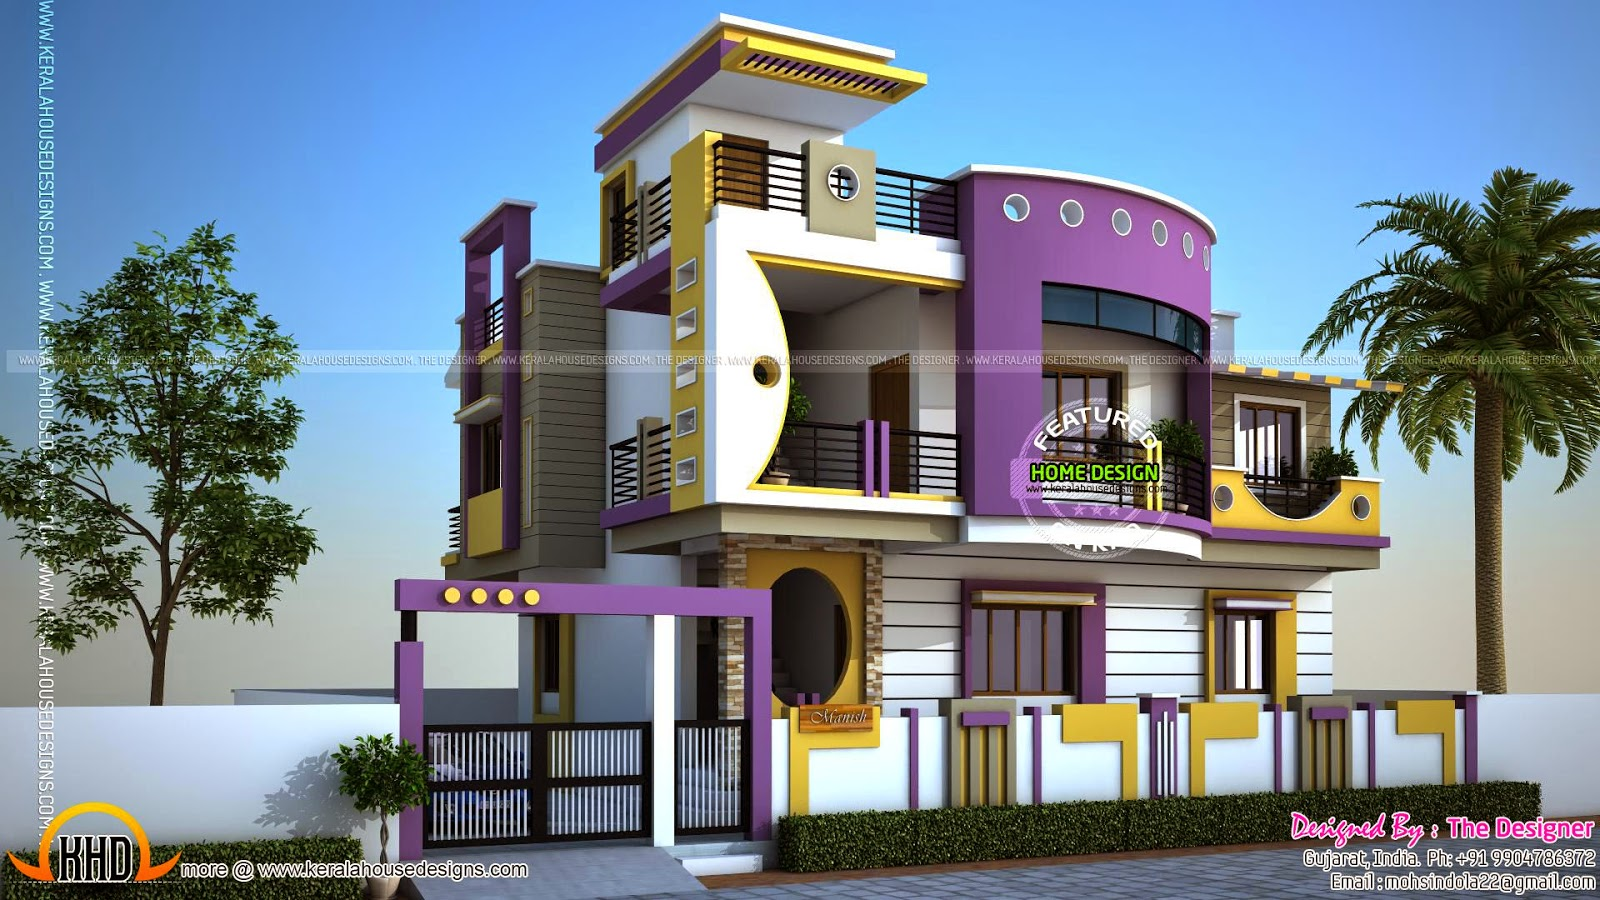 House exterior designs in contemporary style kerala home for Modern exterior house designs